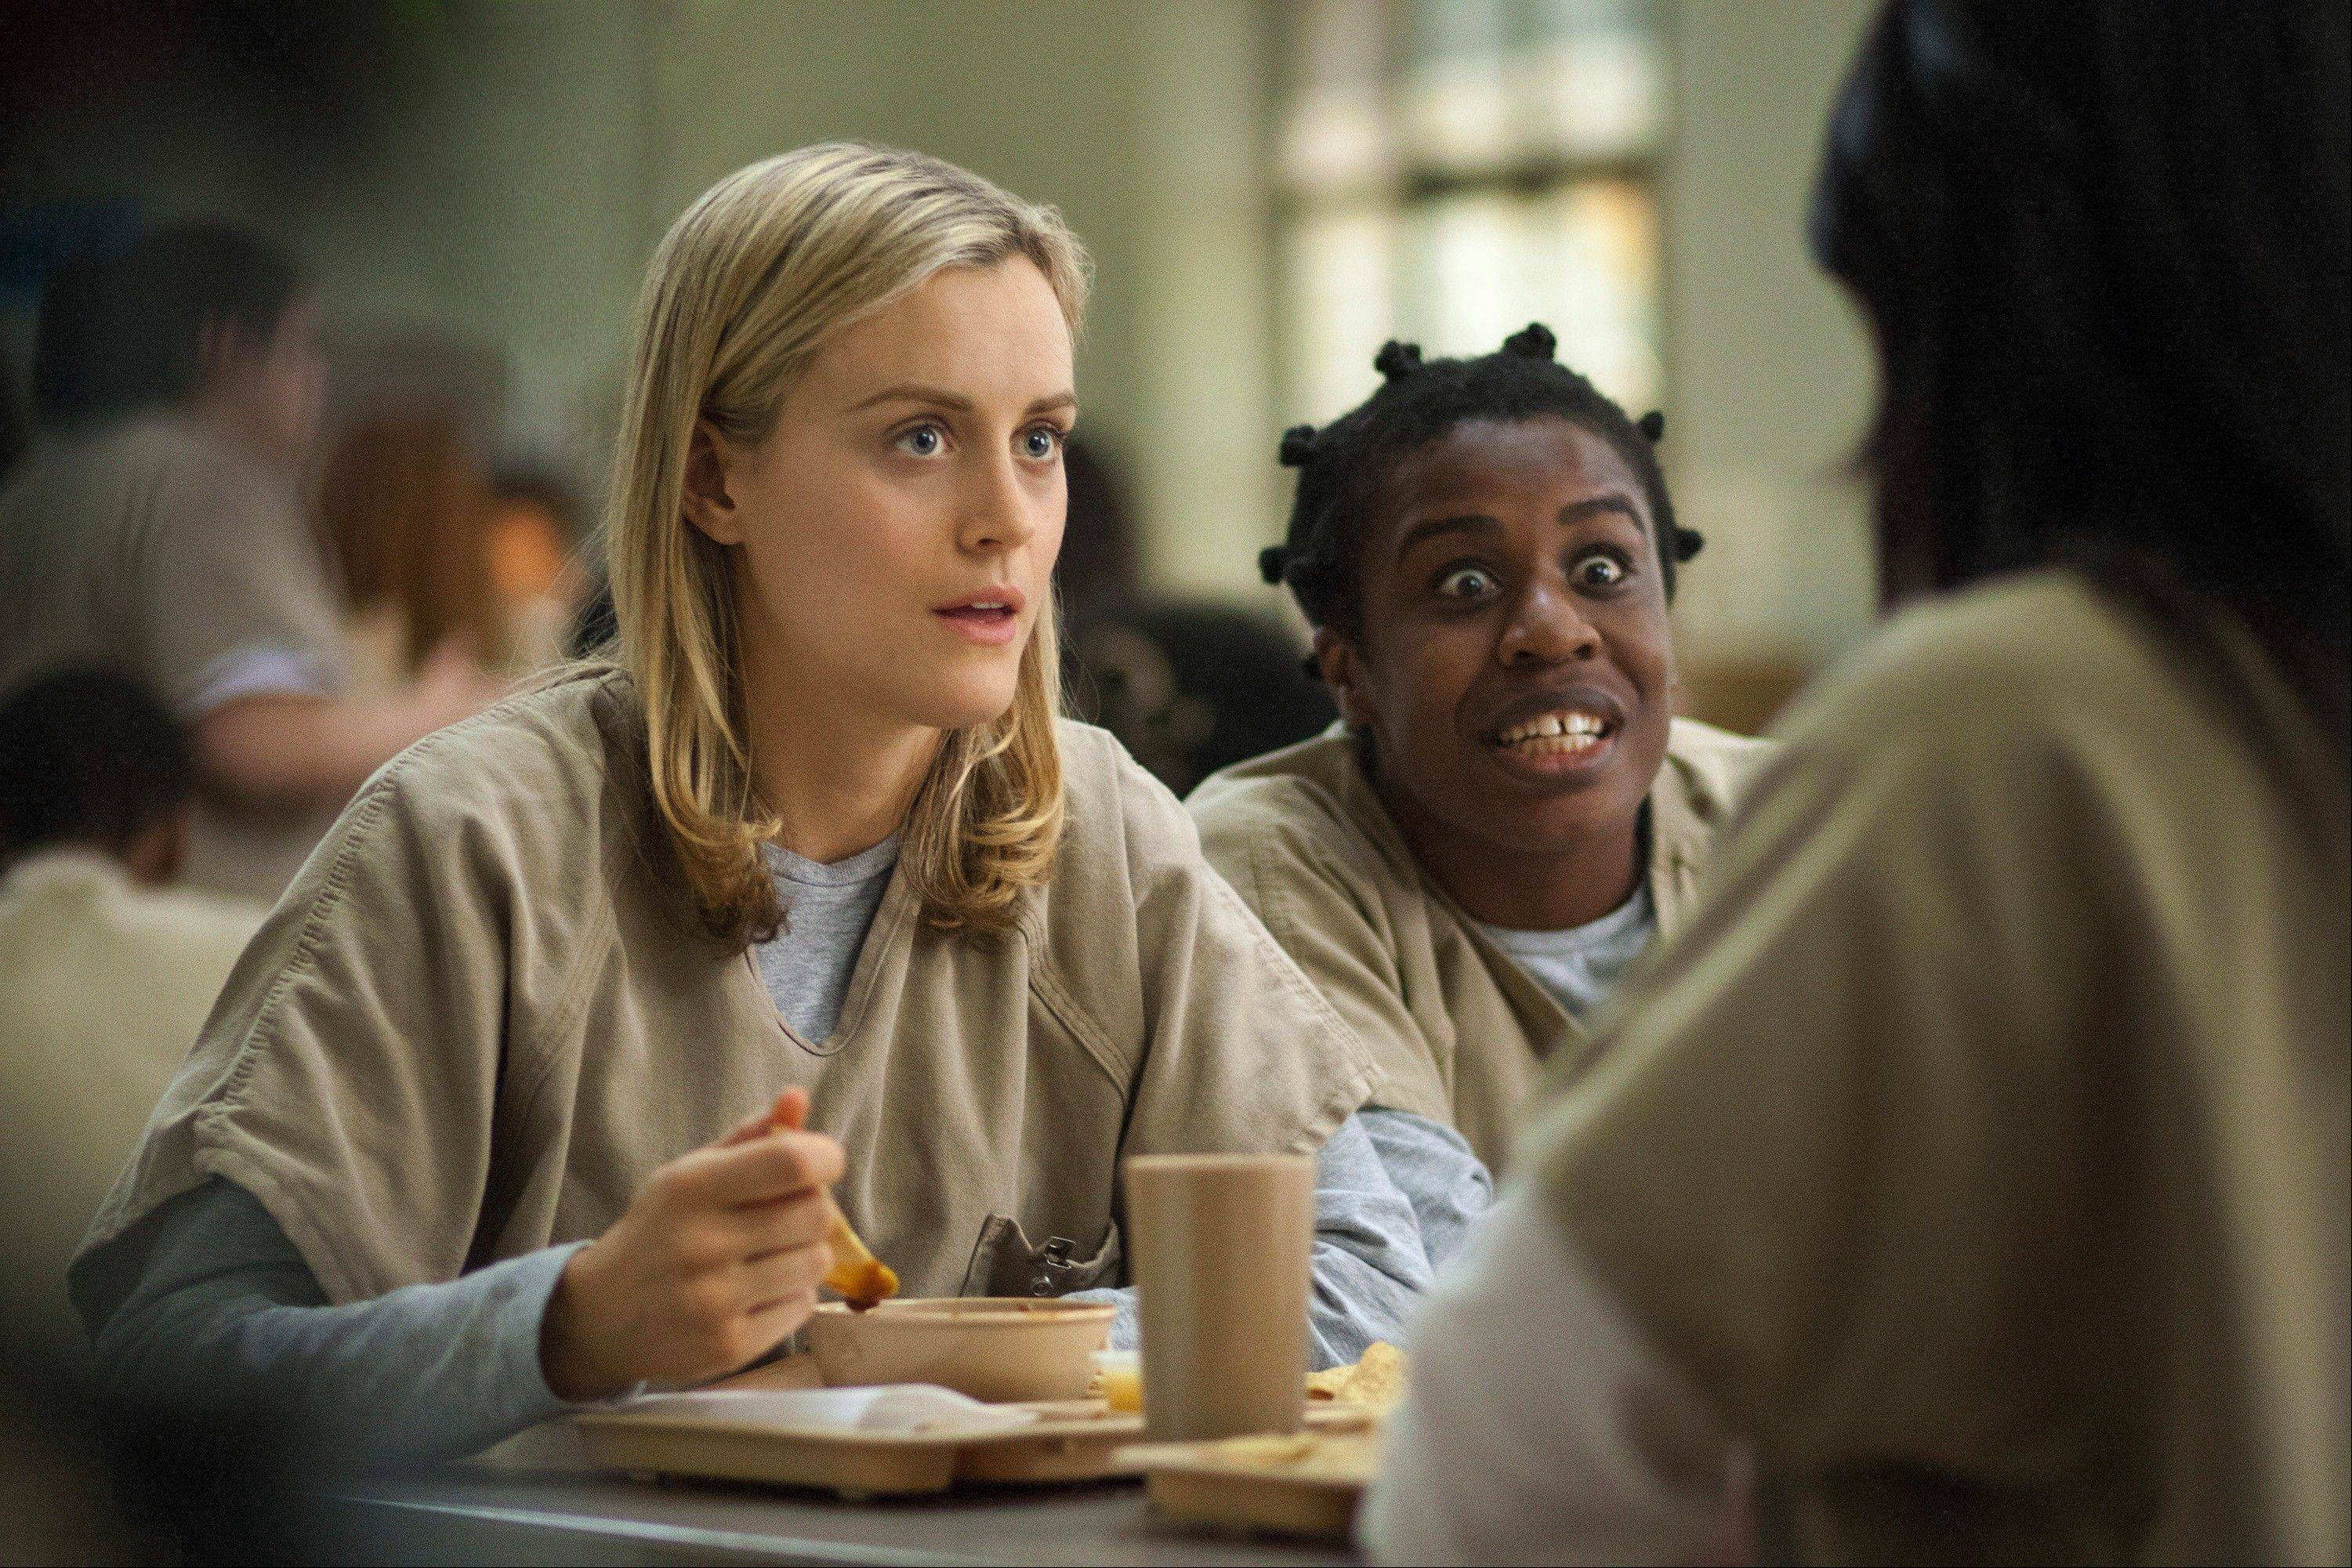 Does the 13-episode Netflix dump of �Orange is the New Black� in July mandate, or suspend, spoiler-free behavior?